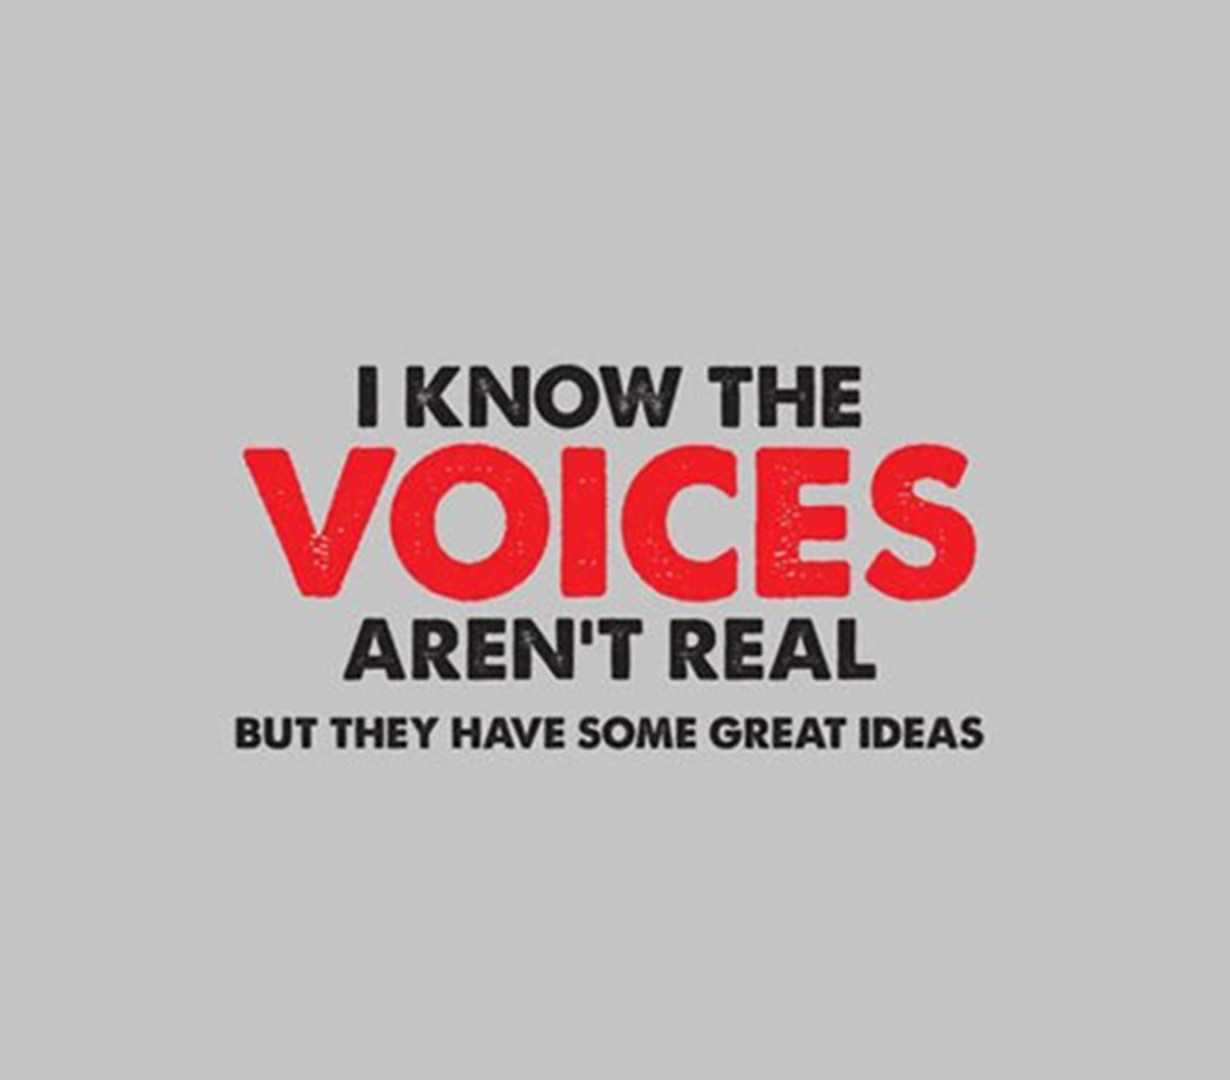 I-know-the-voices-arent-real